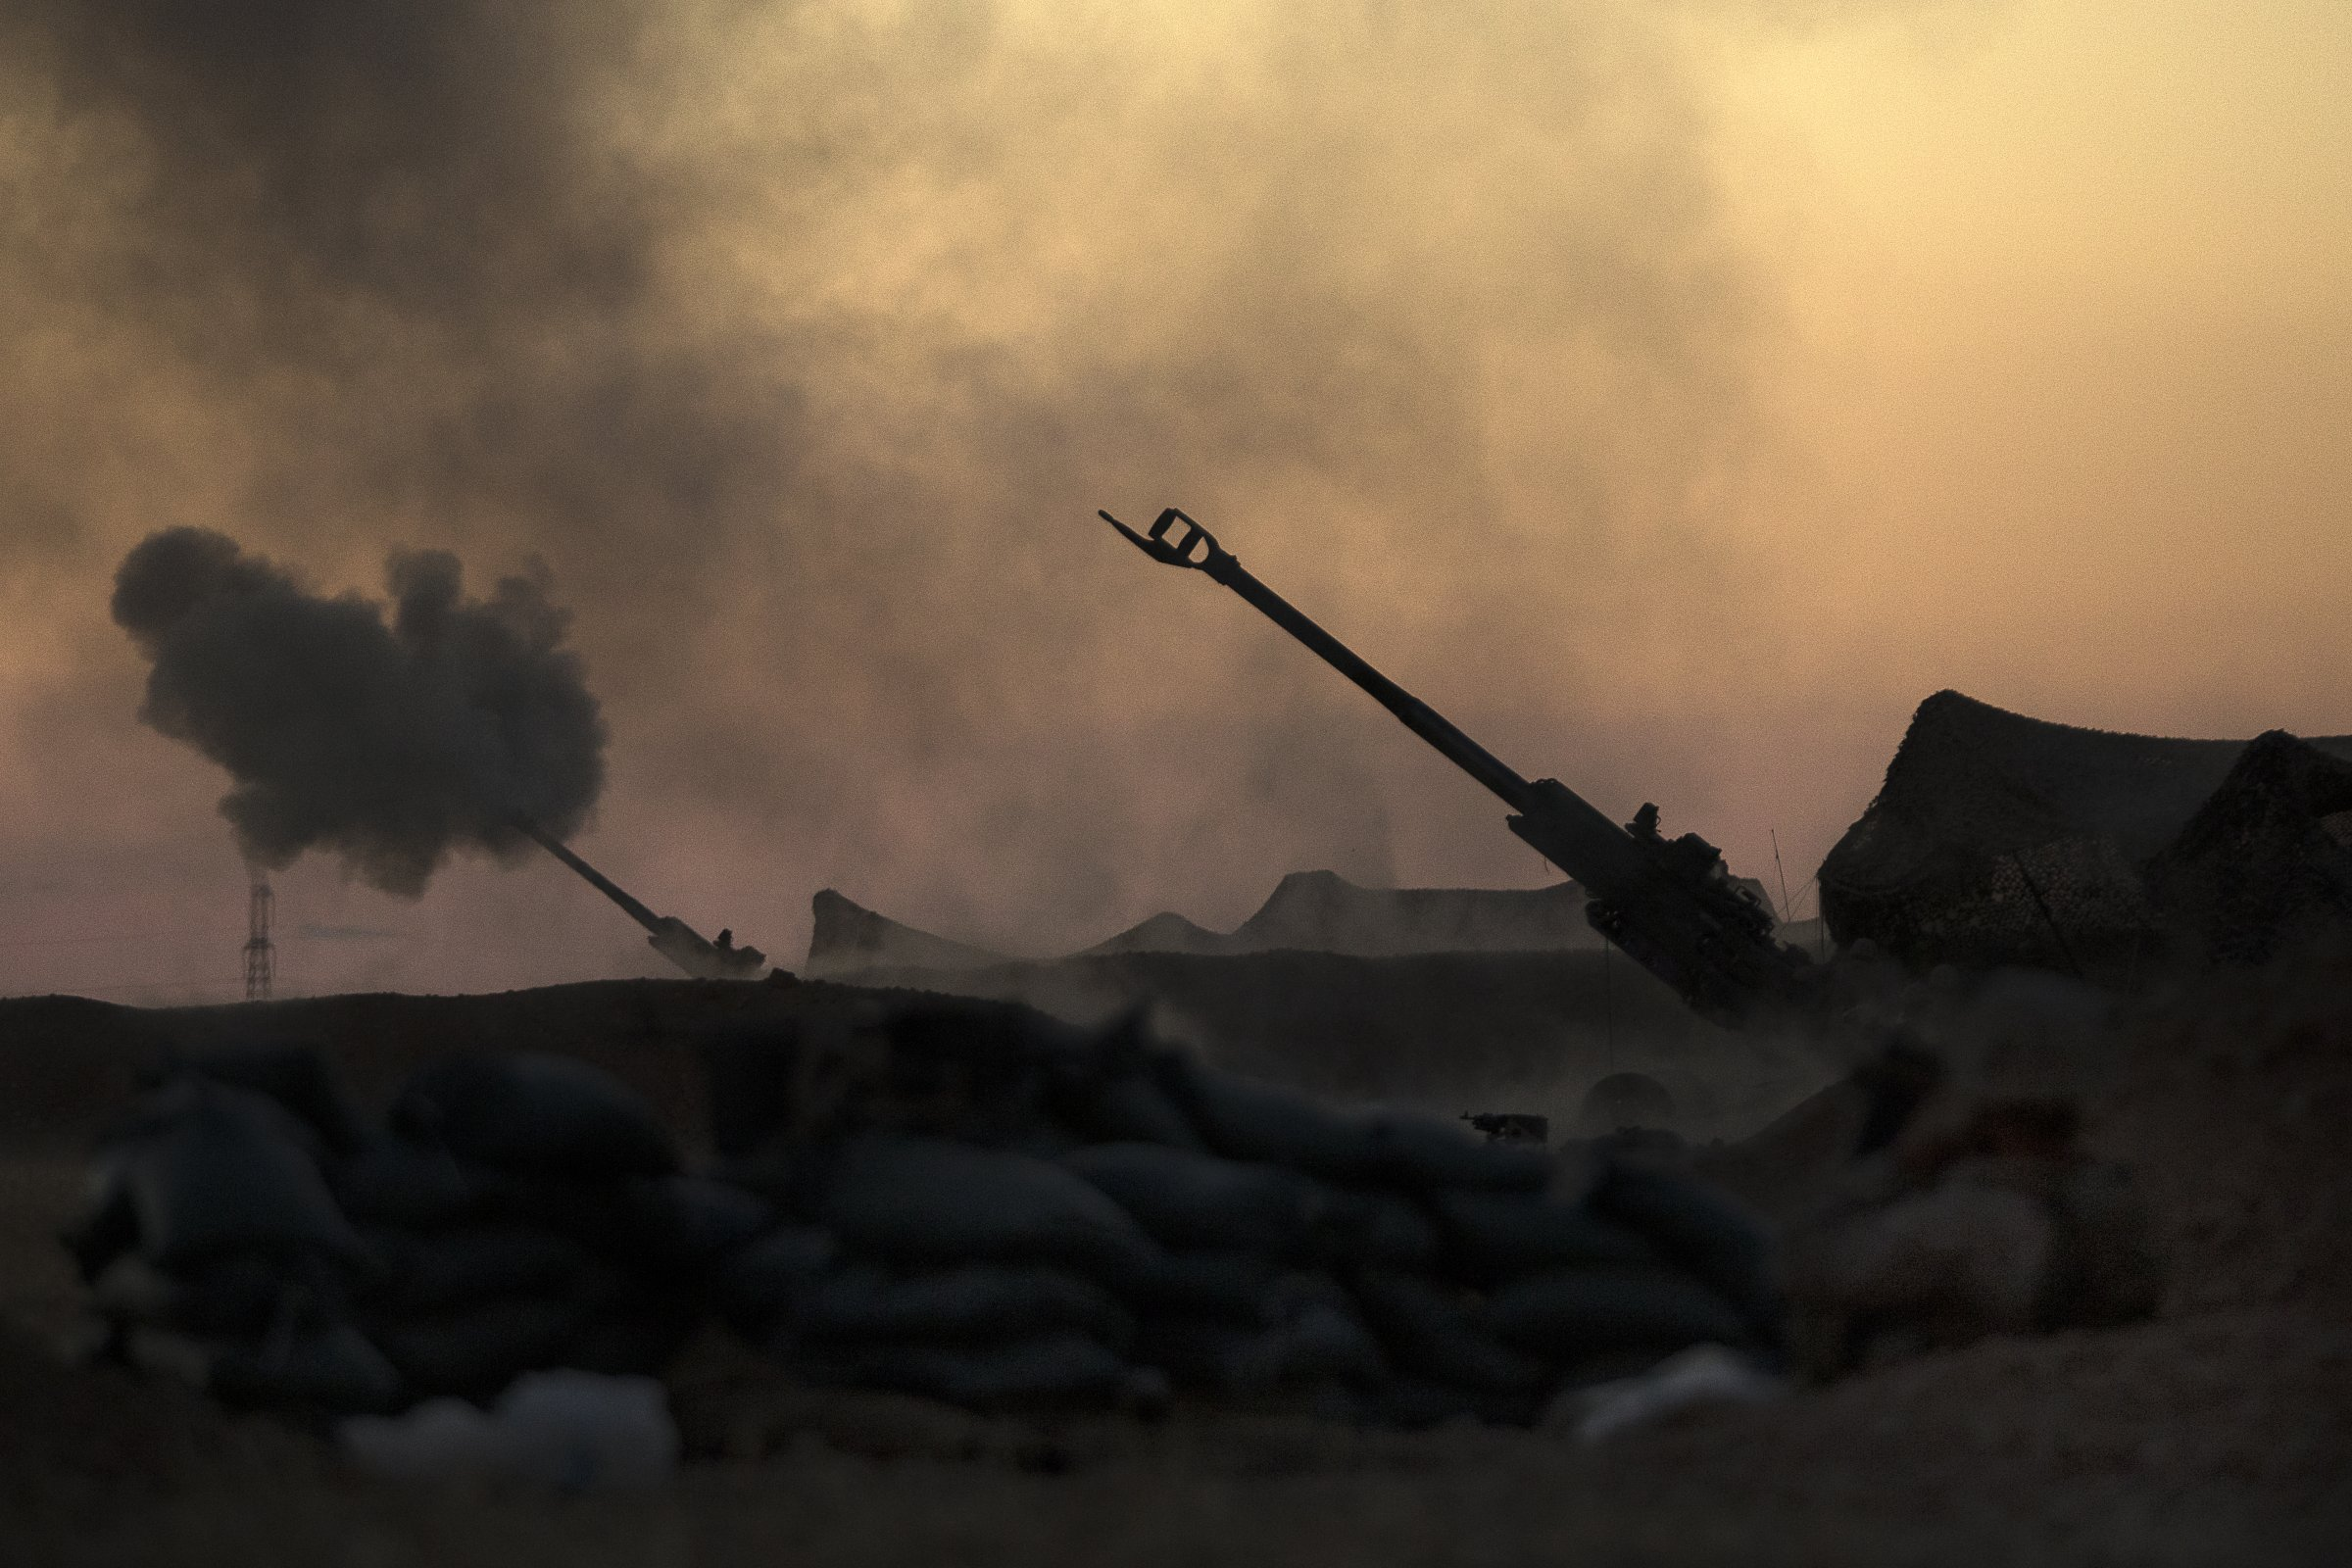 Artillery strikes against ISIS in Syria were so intense they burned out 2 Marine howitzers Featured